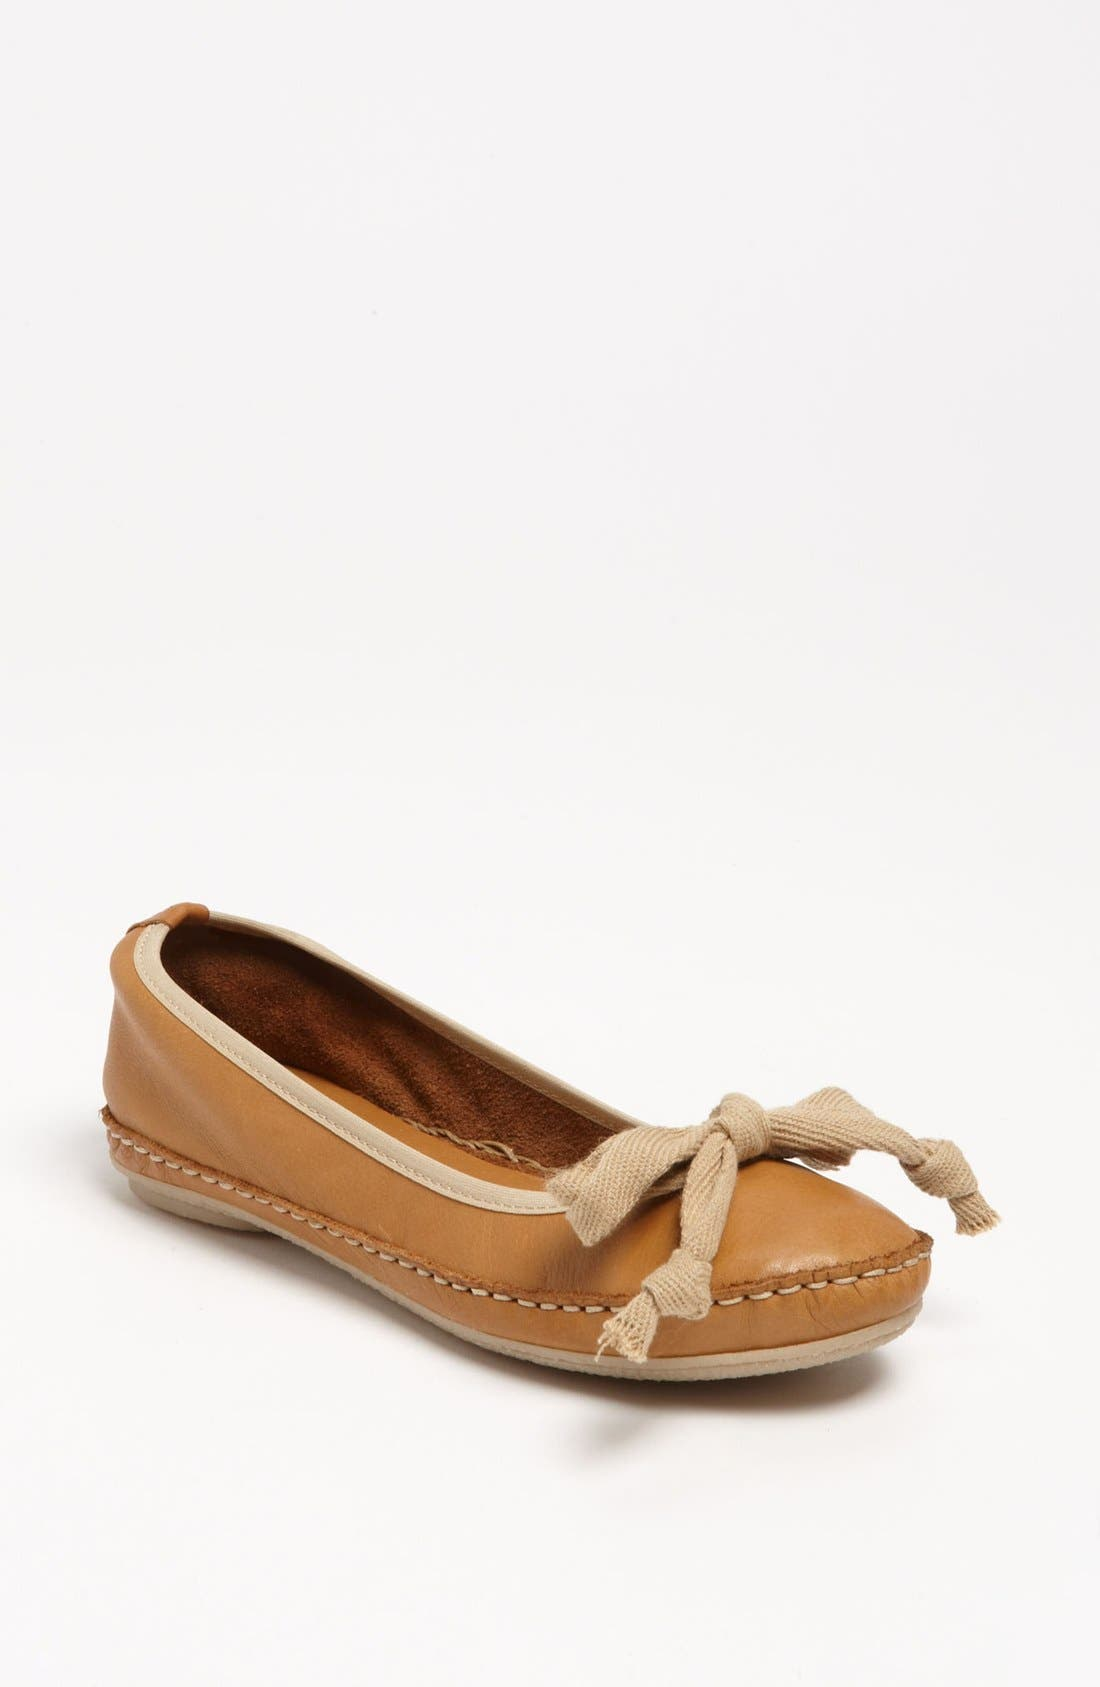 Alternate Image 1 Selected - Giove Leather Flat